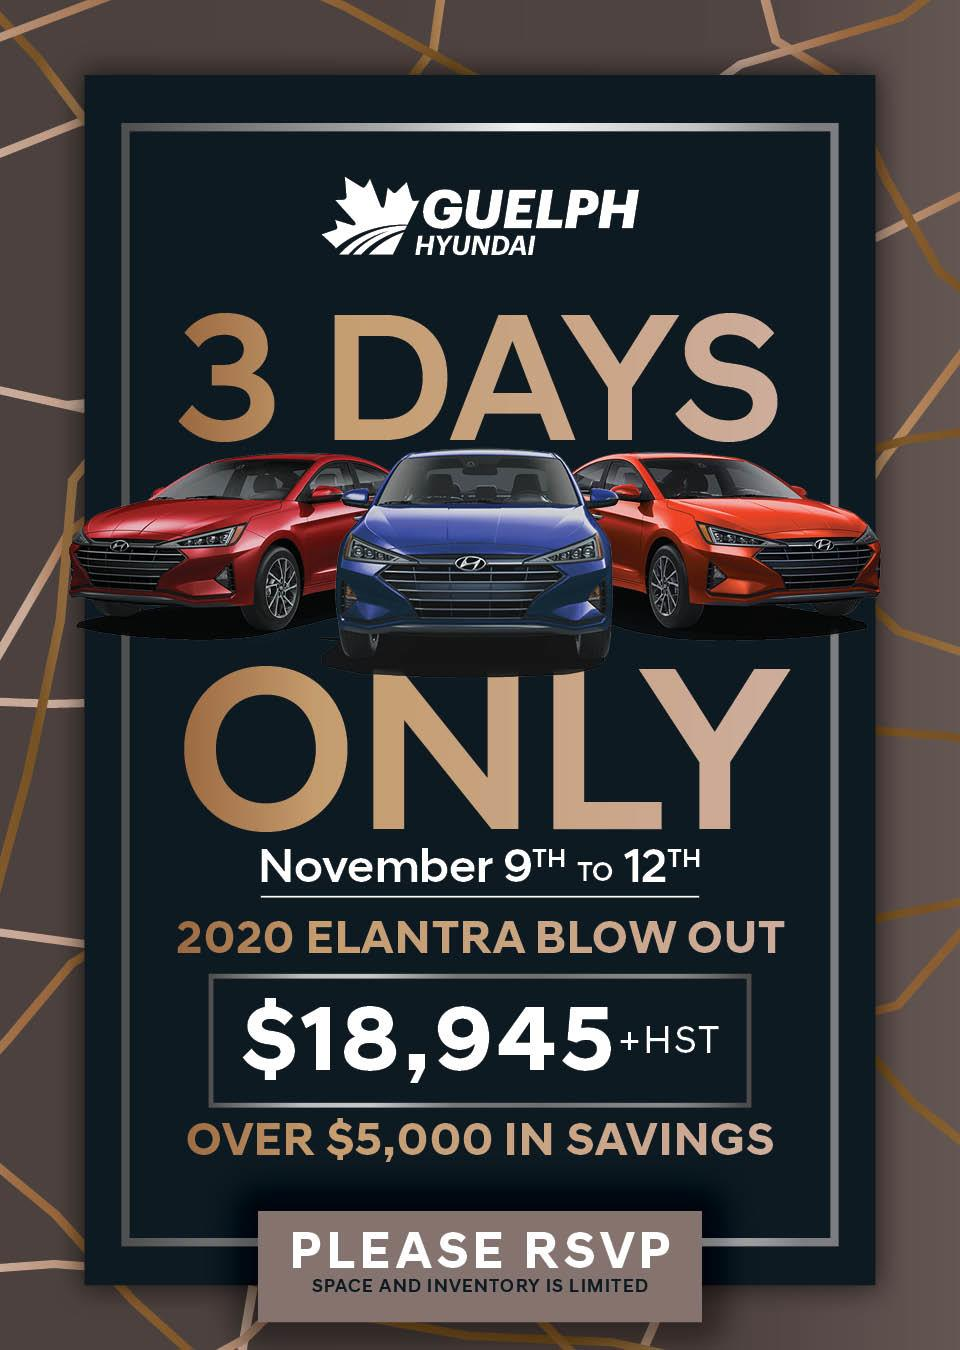 3 Days only. November 8th - 11th